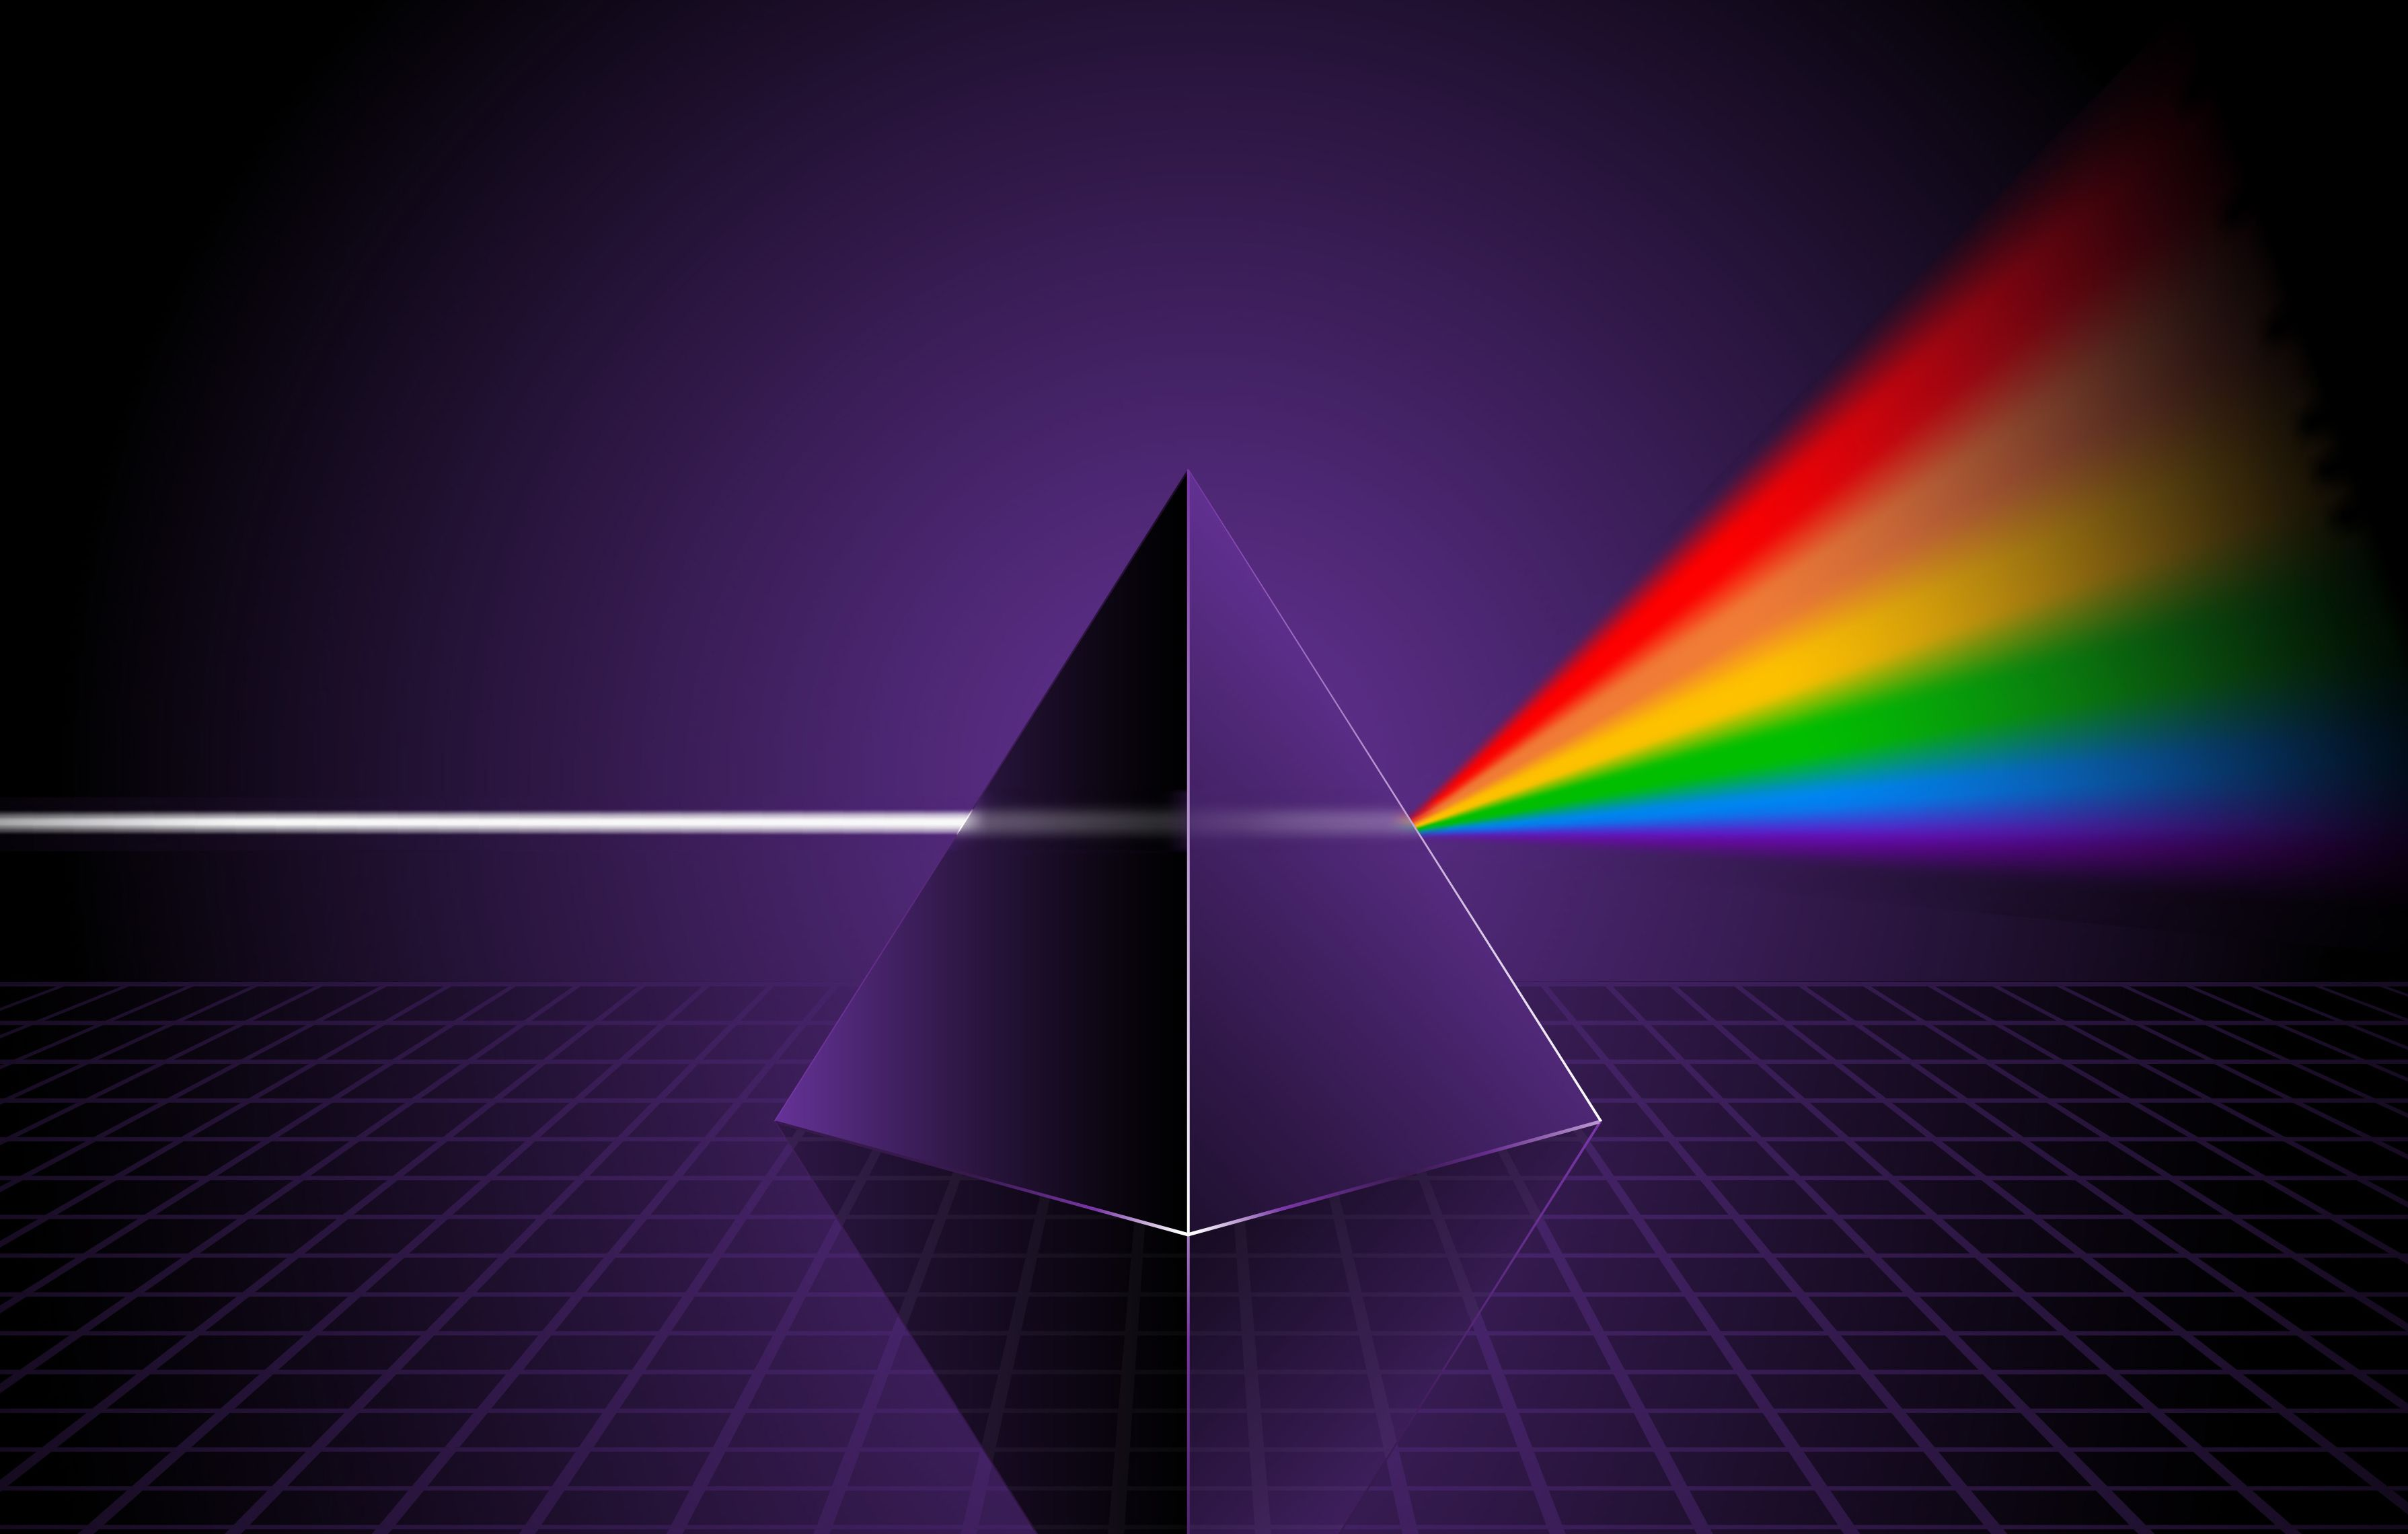 We can use the prism idea to display the various layers of ...